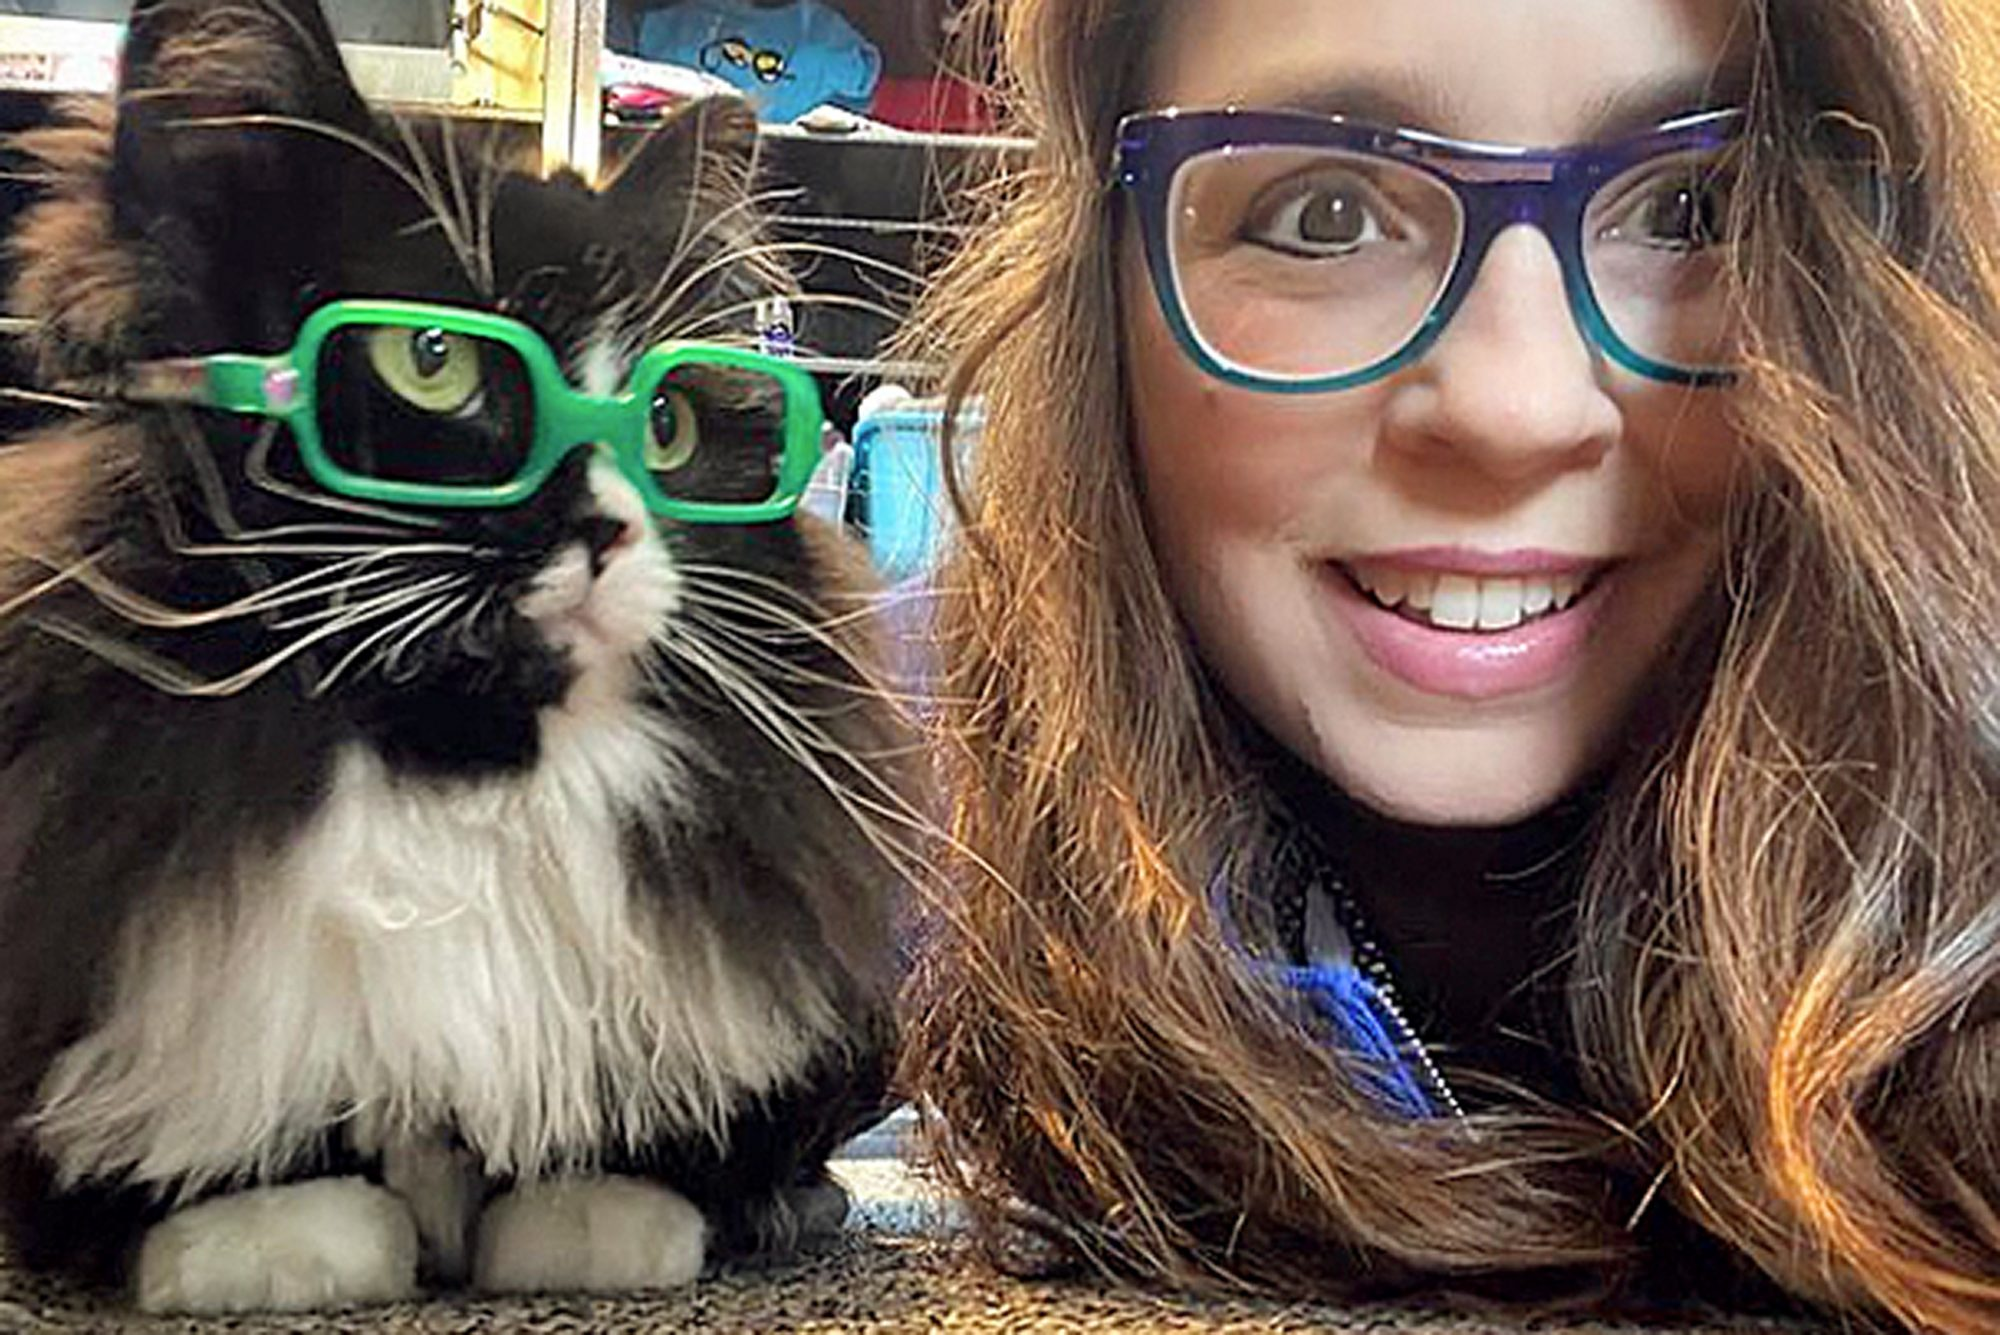 truffles the glasses cat wearing neon green glasses and his owner Danielle